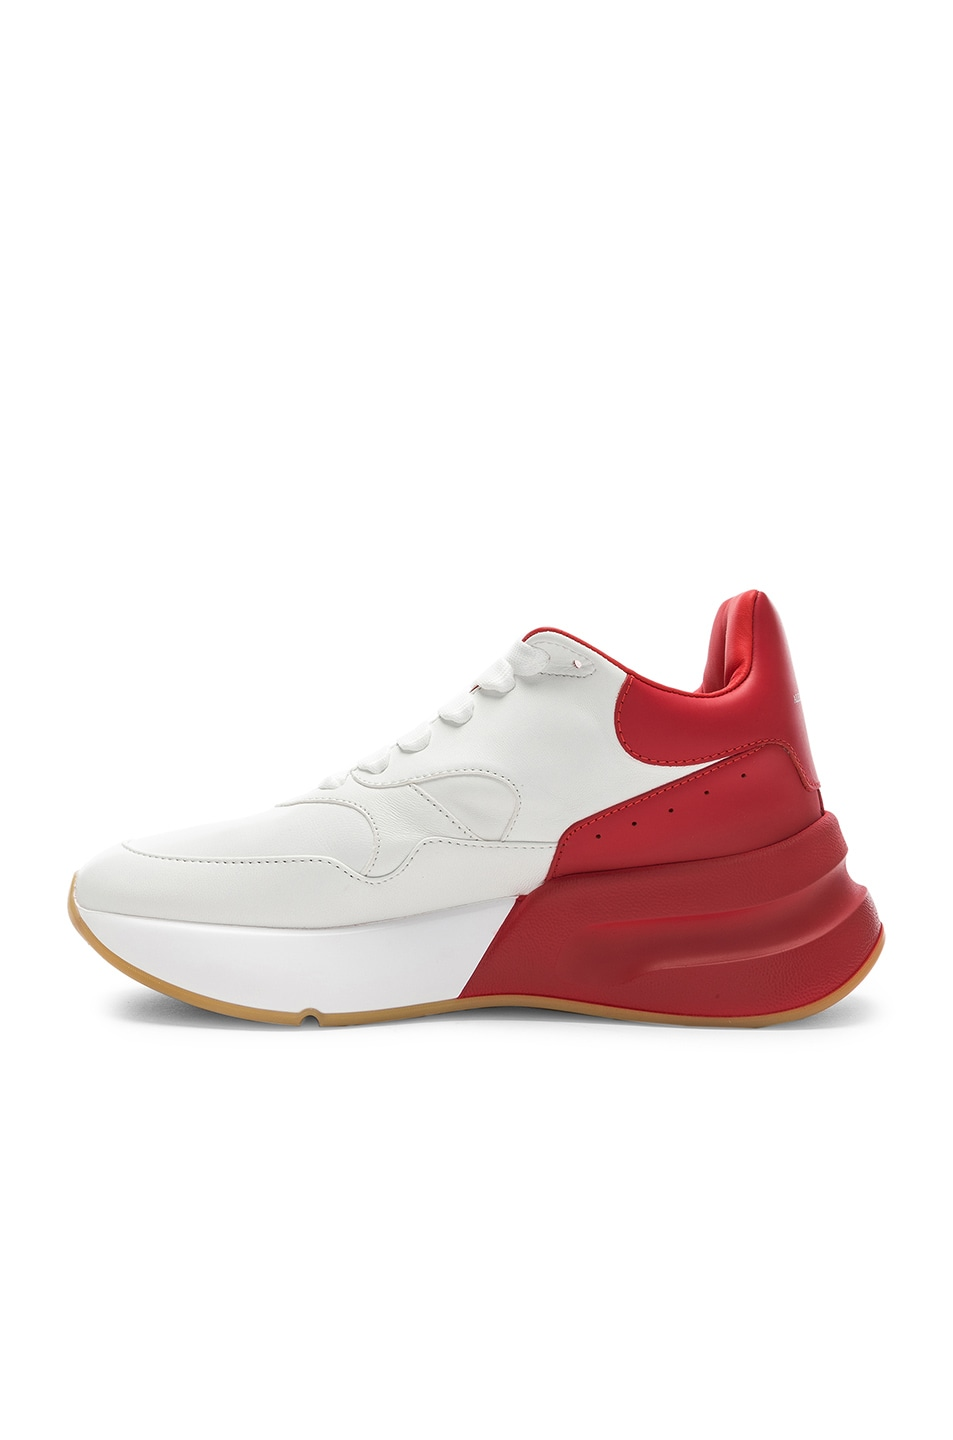 Image 5 of Alexander McQueen Two Tone Platform Sneakers in Optic White & Lust Red